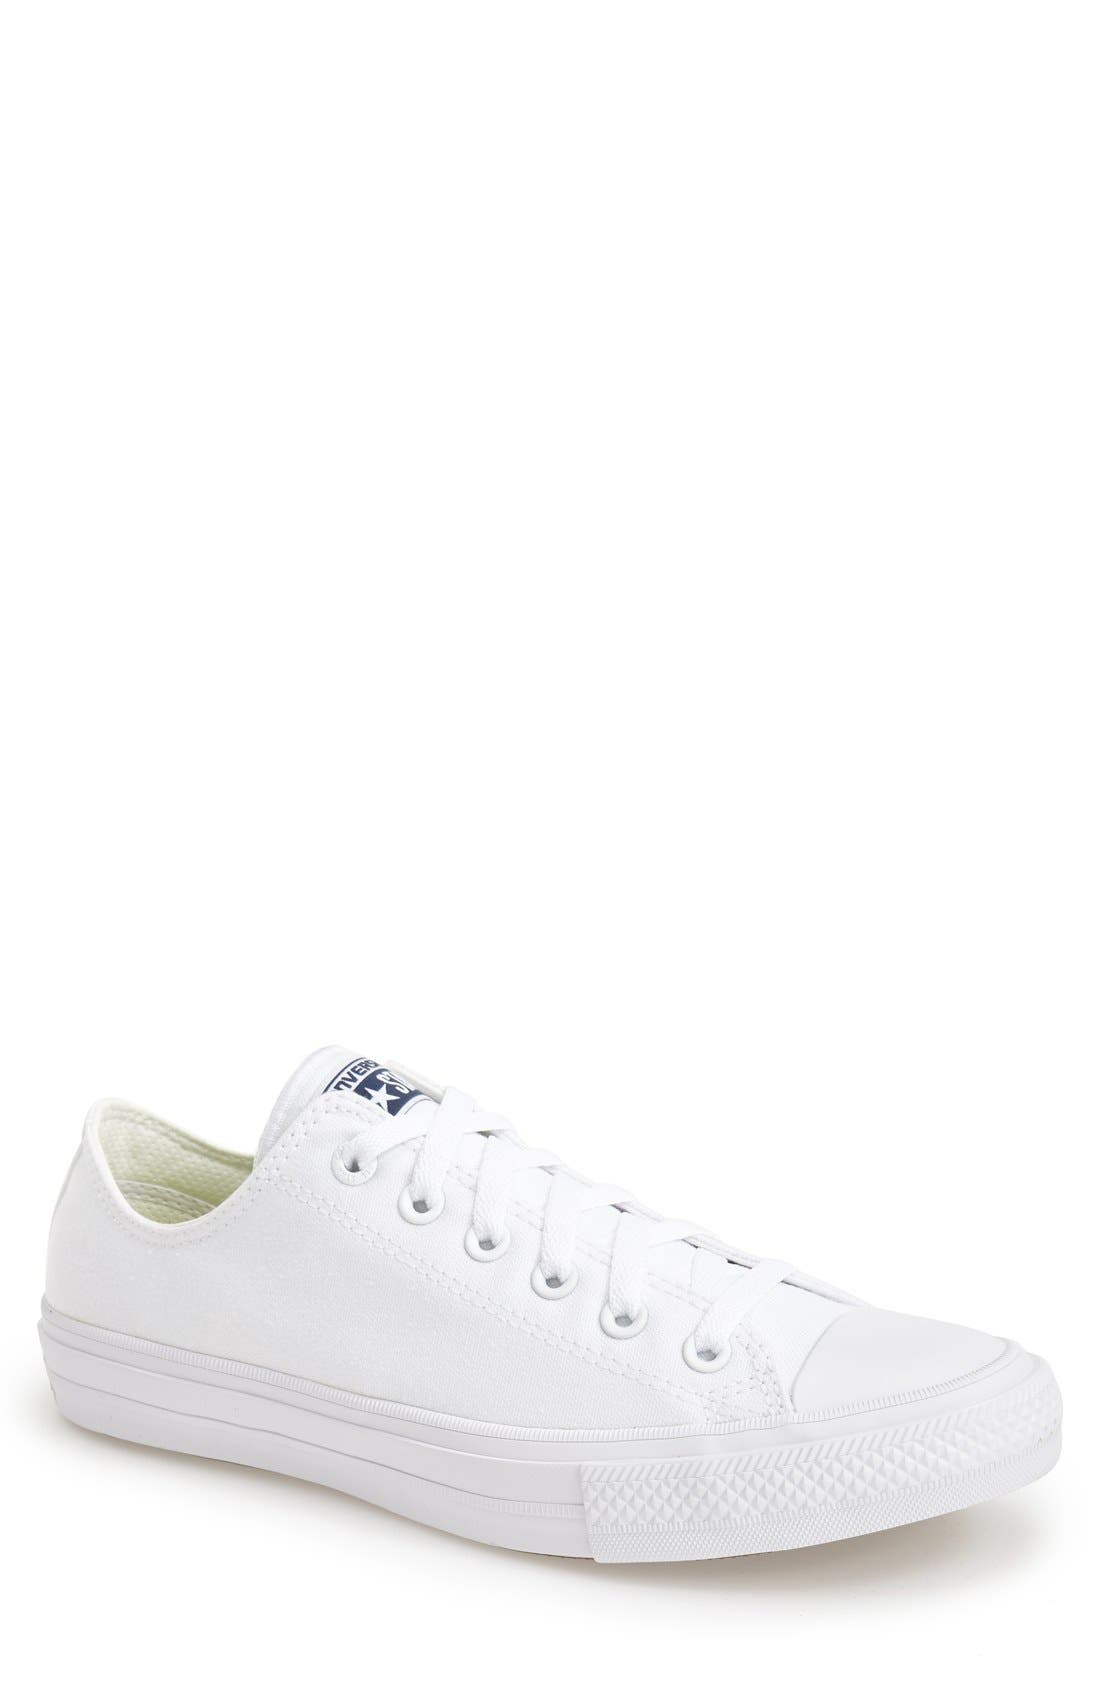 Alternate Image 1 Selected - Converse Chuck Taylor® All Star® II 'Ox' Canvas Sneaker (Men)